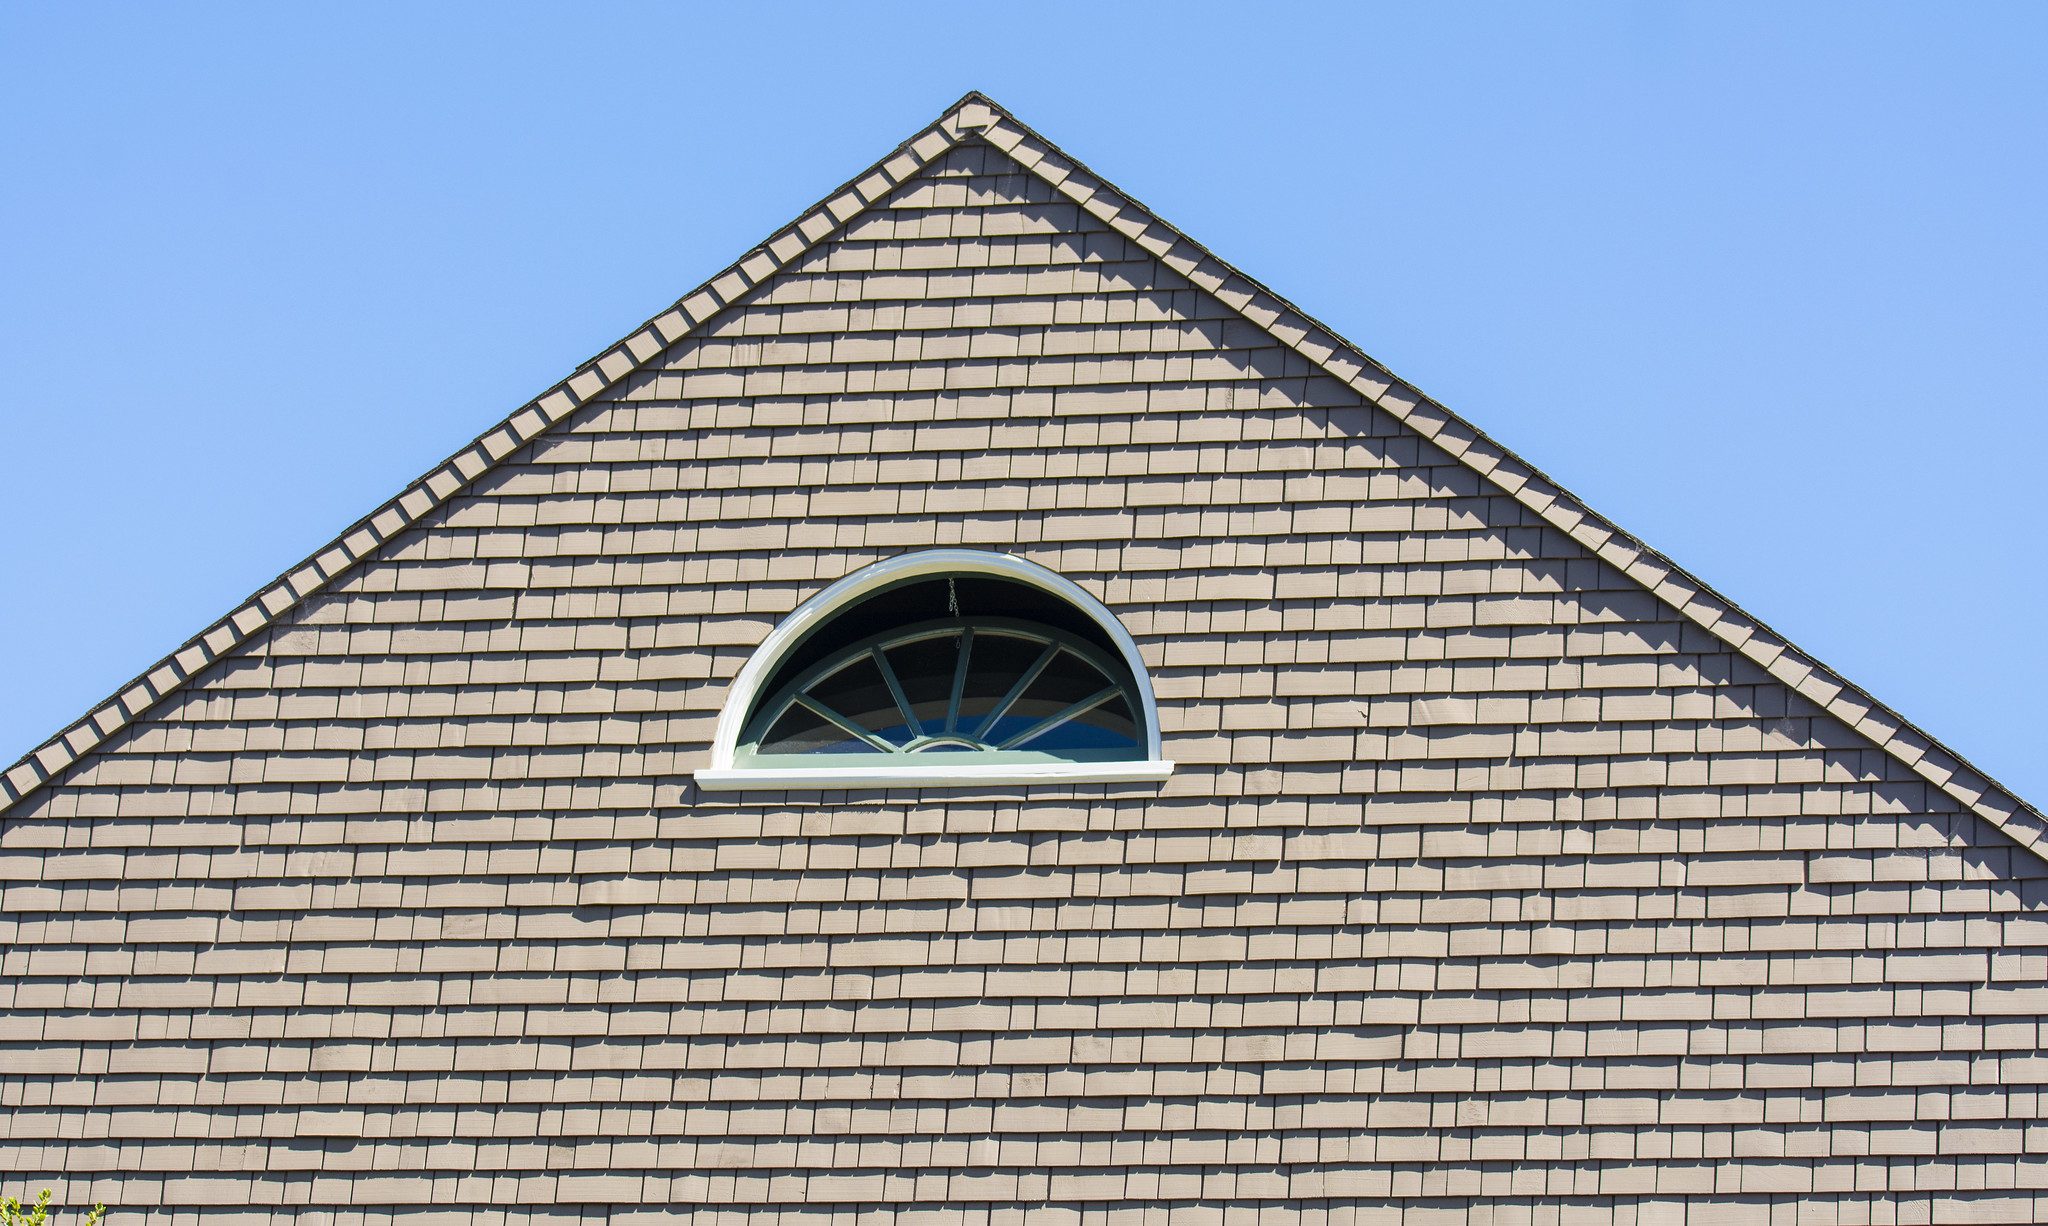 Peaked facade of a shingle house with a semicircular window